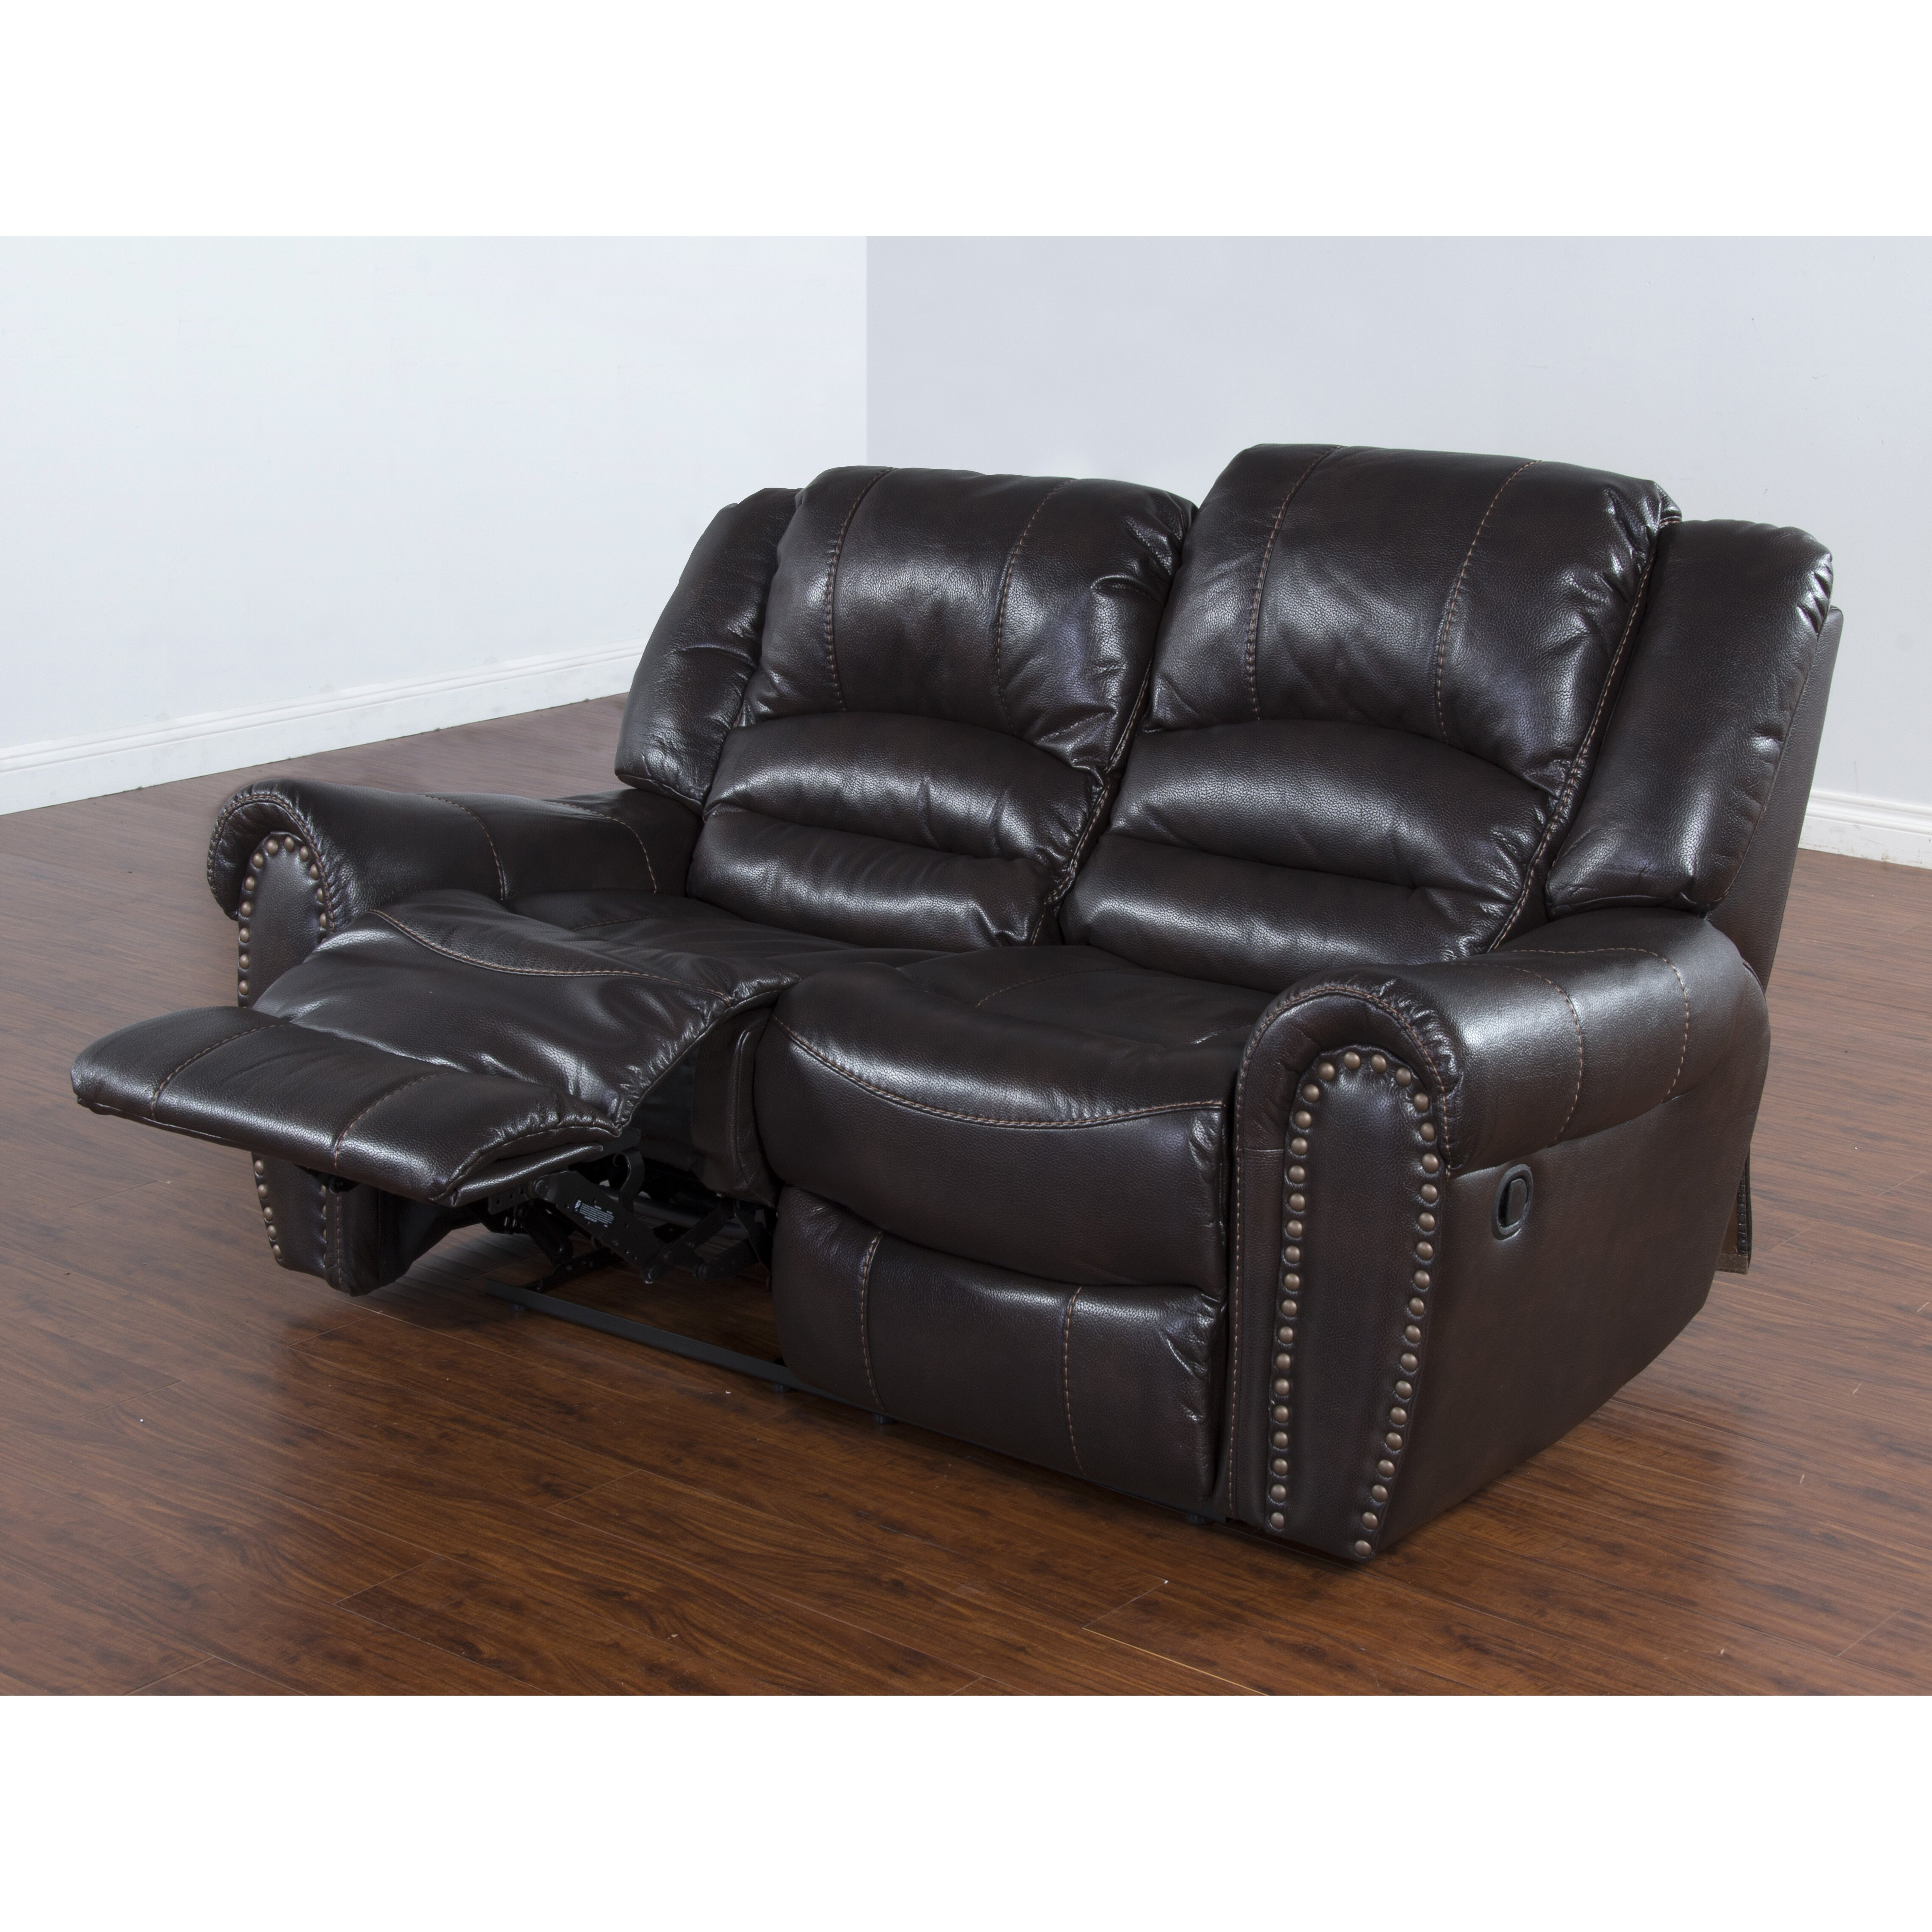 Sunny Designs Wyoming Dual Reclining Loveseat & Reviews